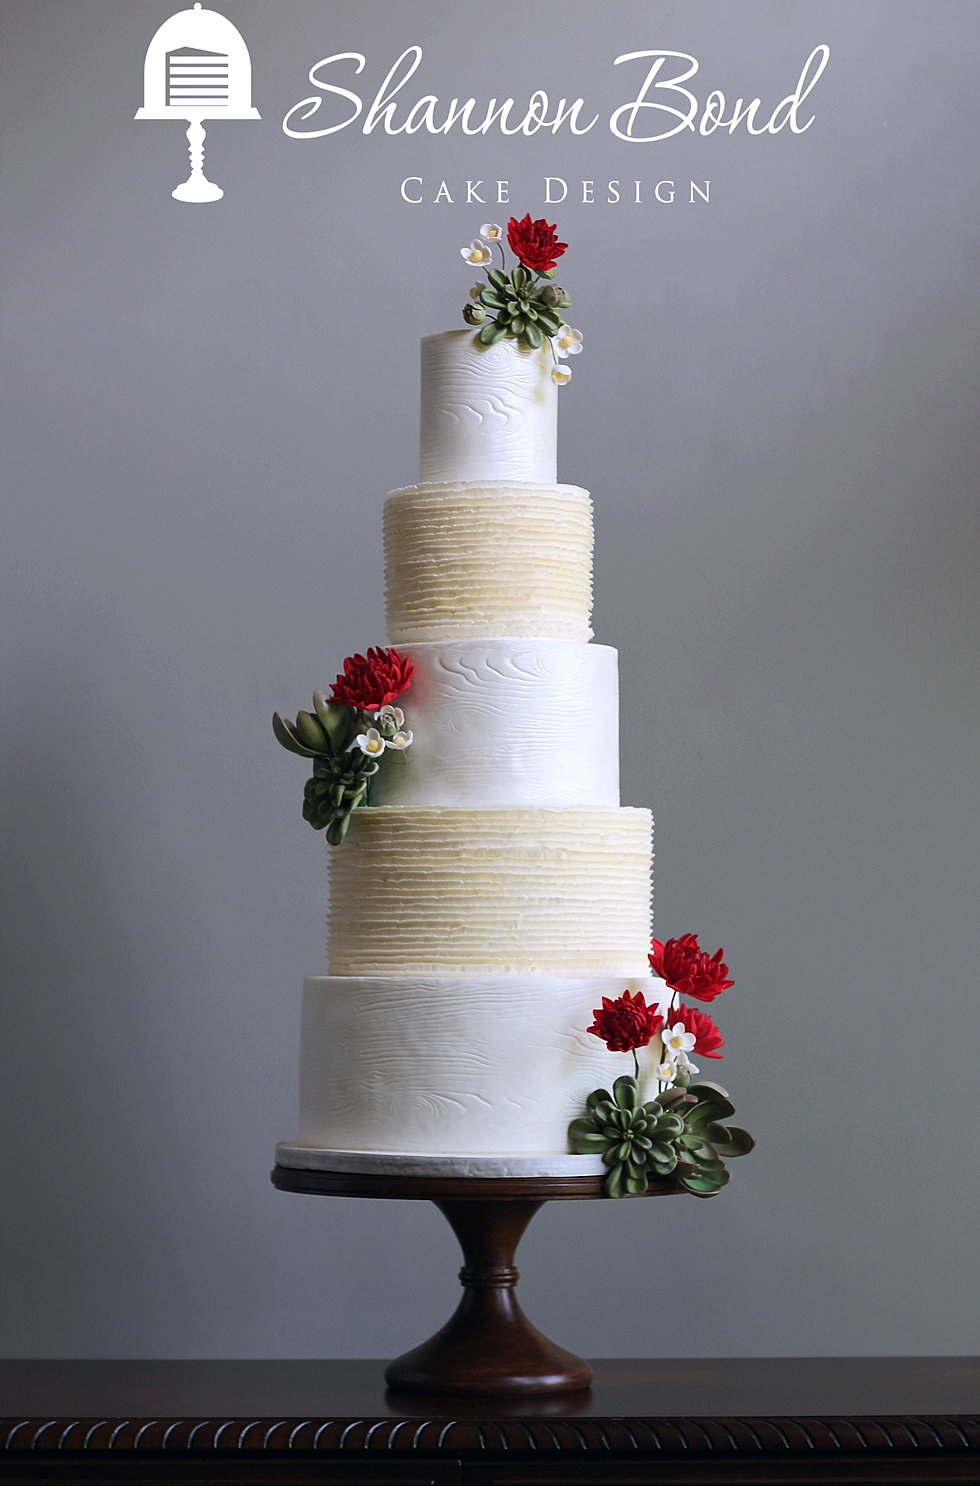 Shannon bond cake design kansas city wedding and custom cakes wood grain and ruffle wedding cake junglespirit